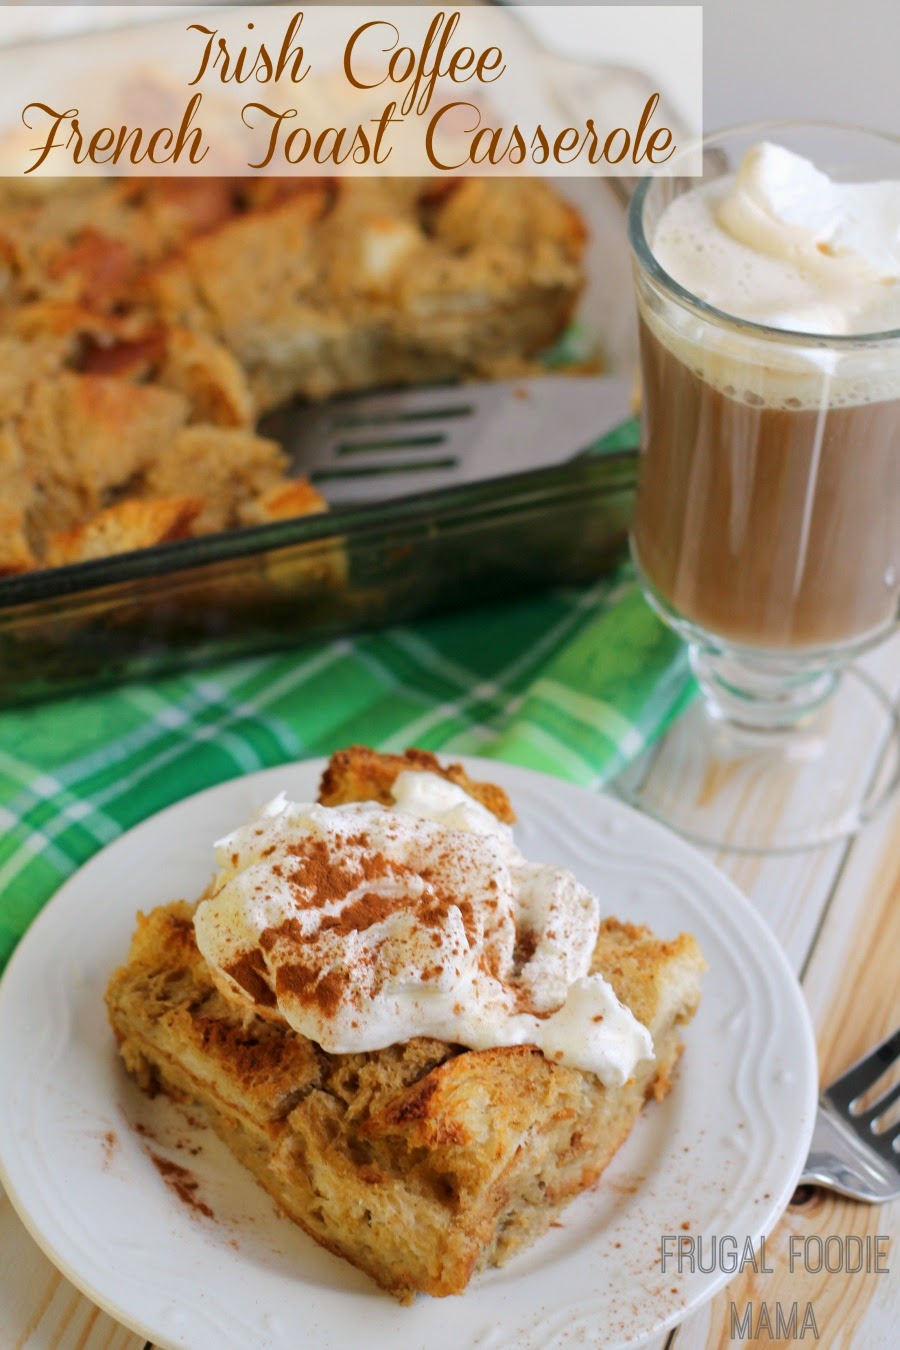 This delicious, make-ahead Irish Coffee French Toast Casserole is spiked with Irish cream, coffee, and whiskey